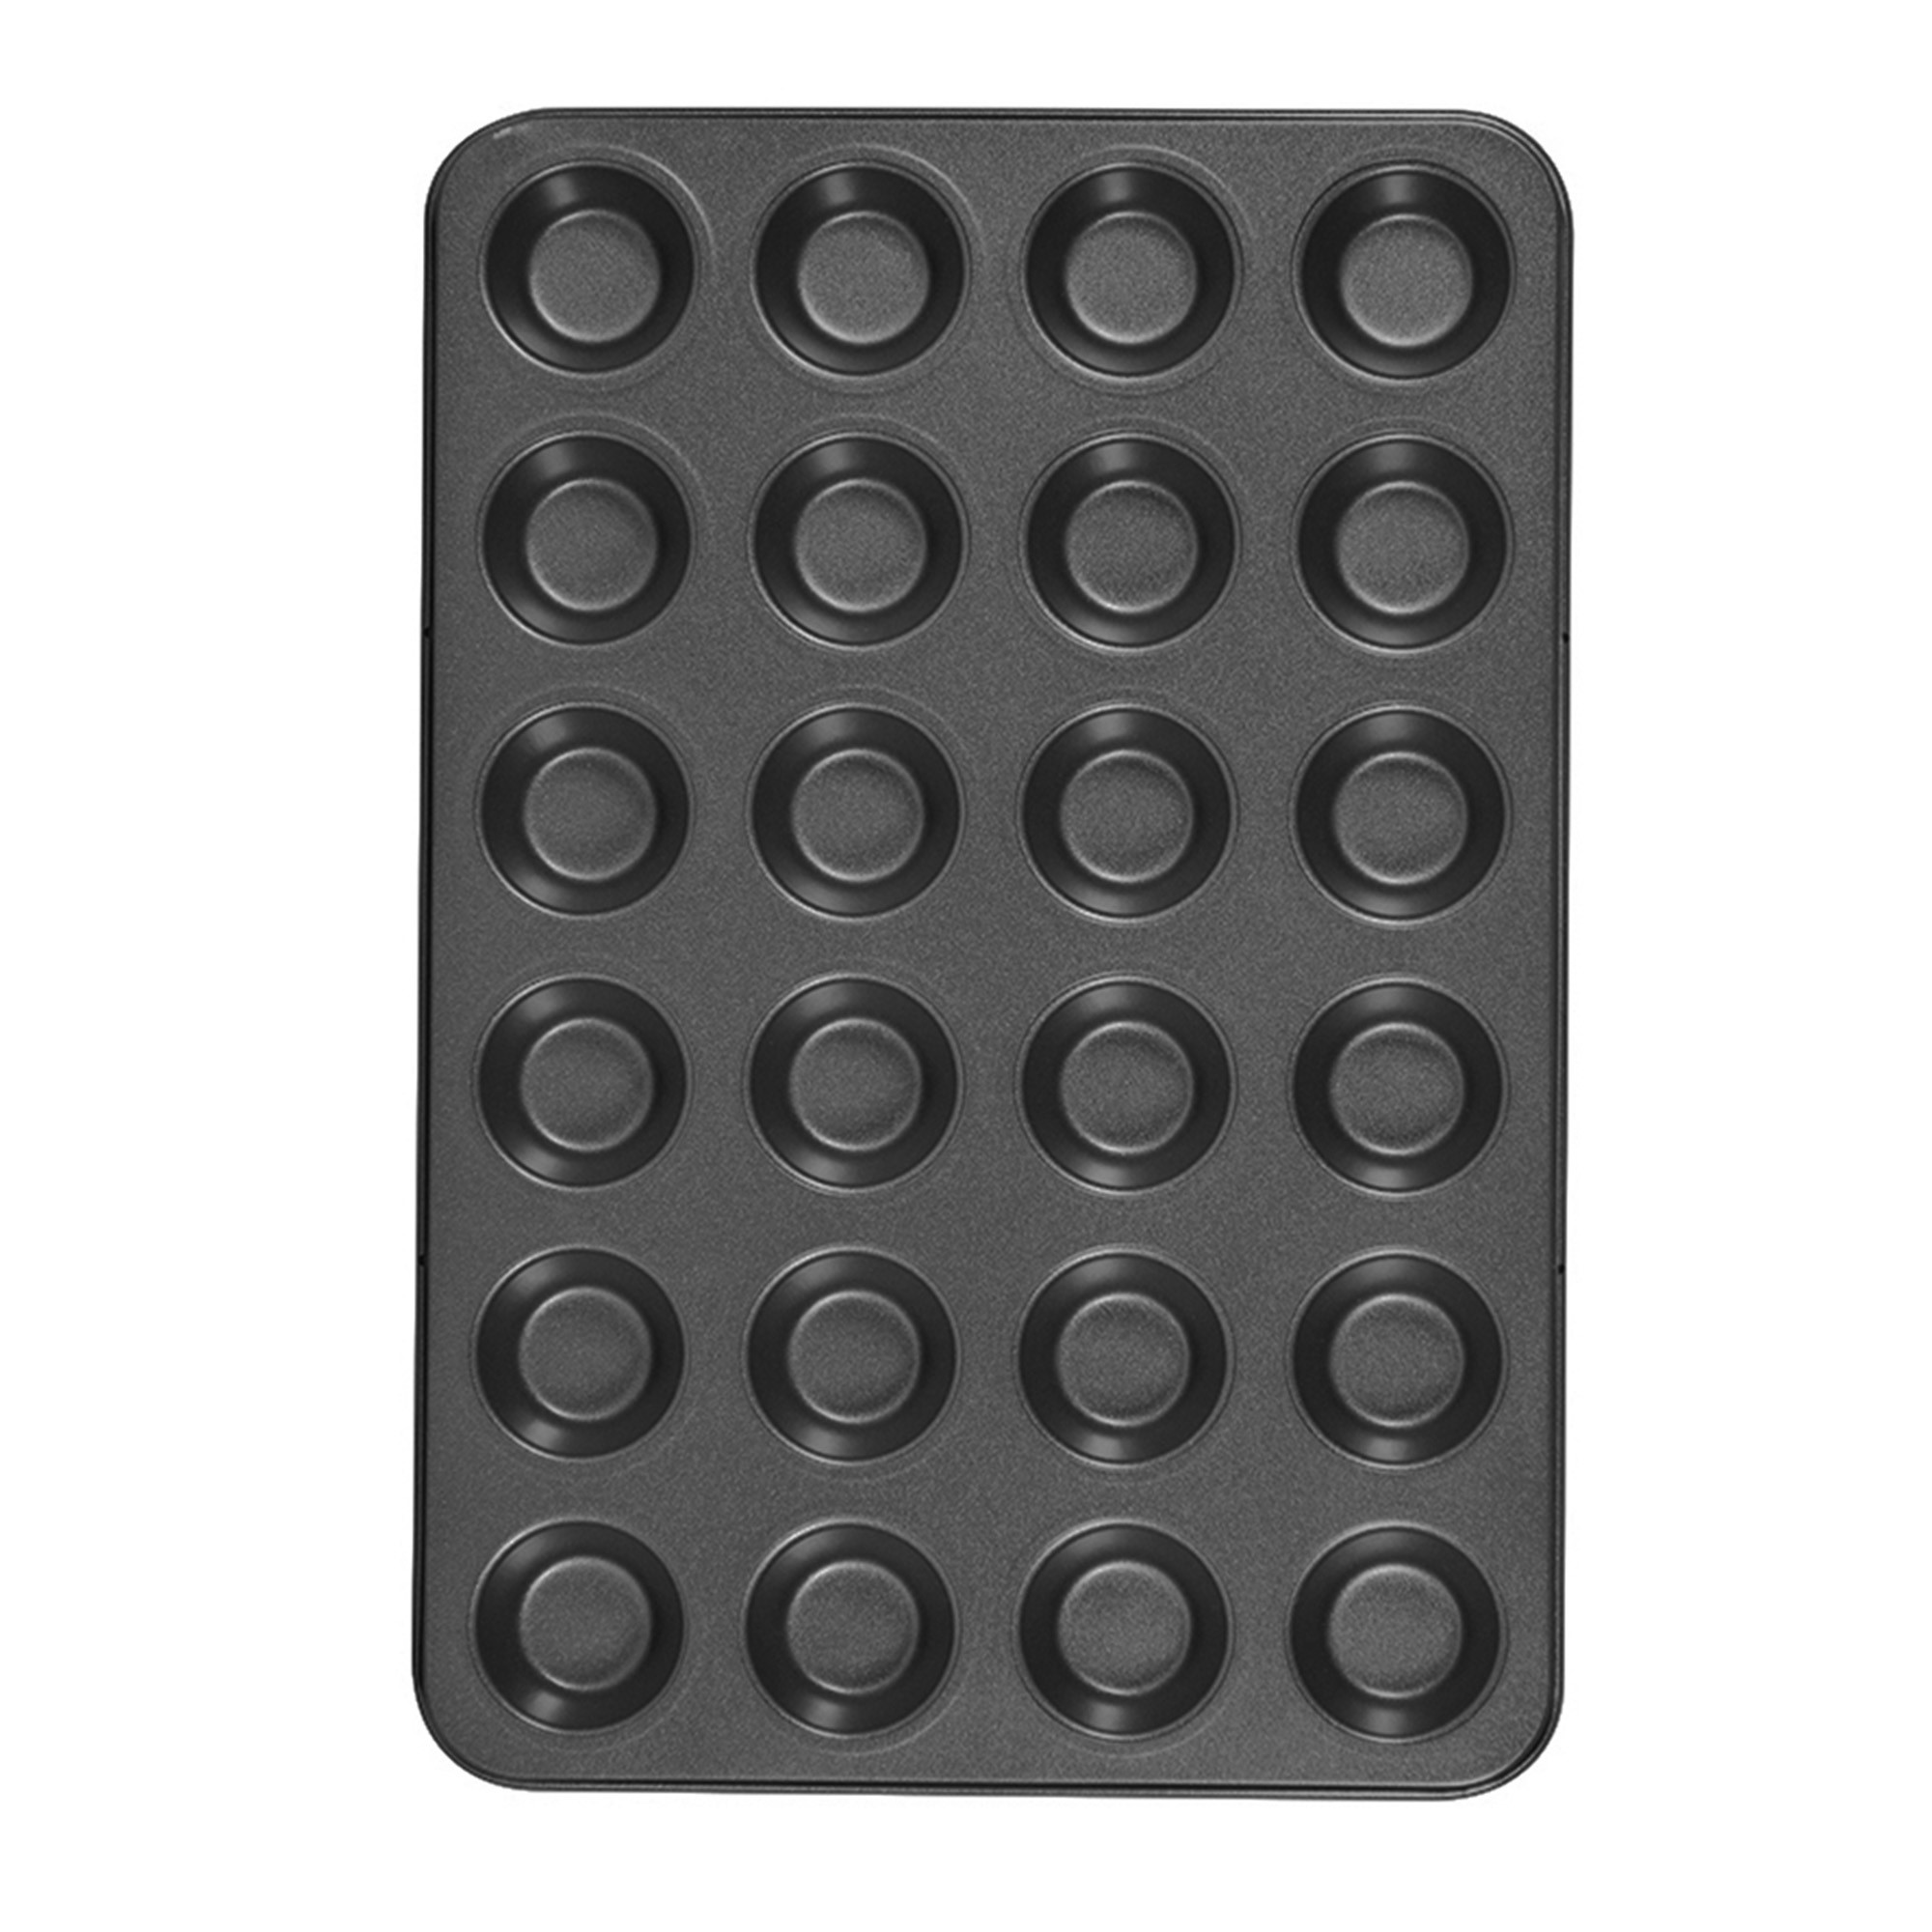 Pudding Mini Muffin Trays Muffins WALFOS 24 Silicone Small Cupcake Cases Mould Baking Pan for Cupcakes Brownies